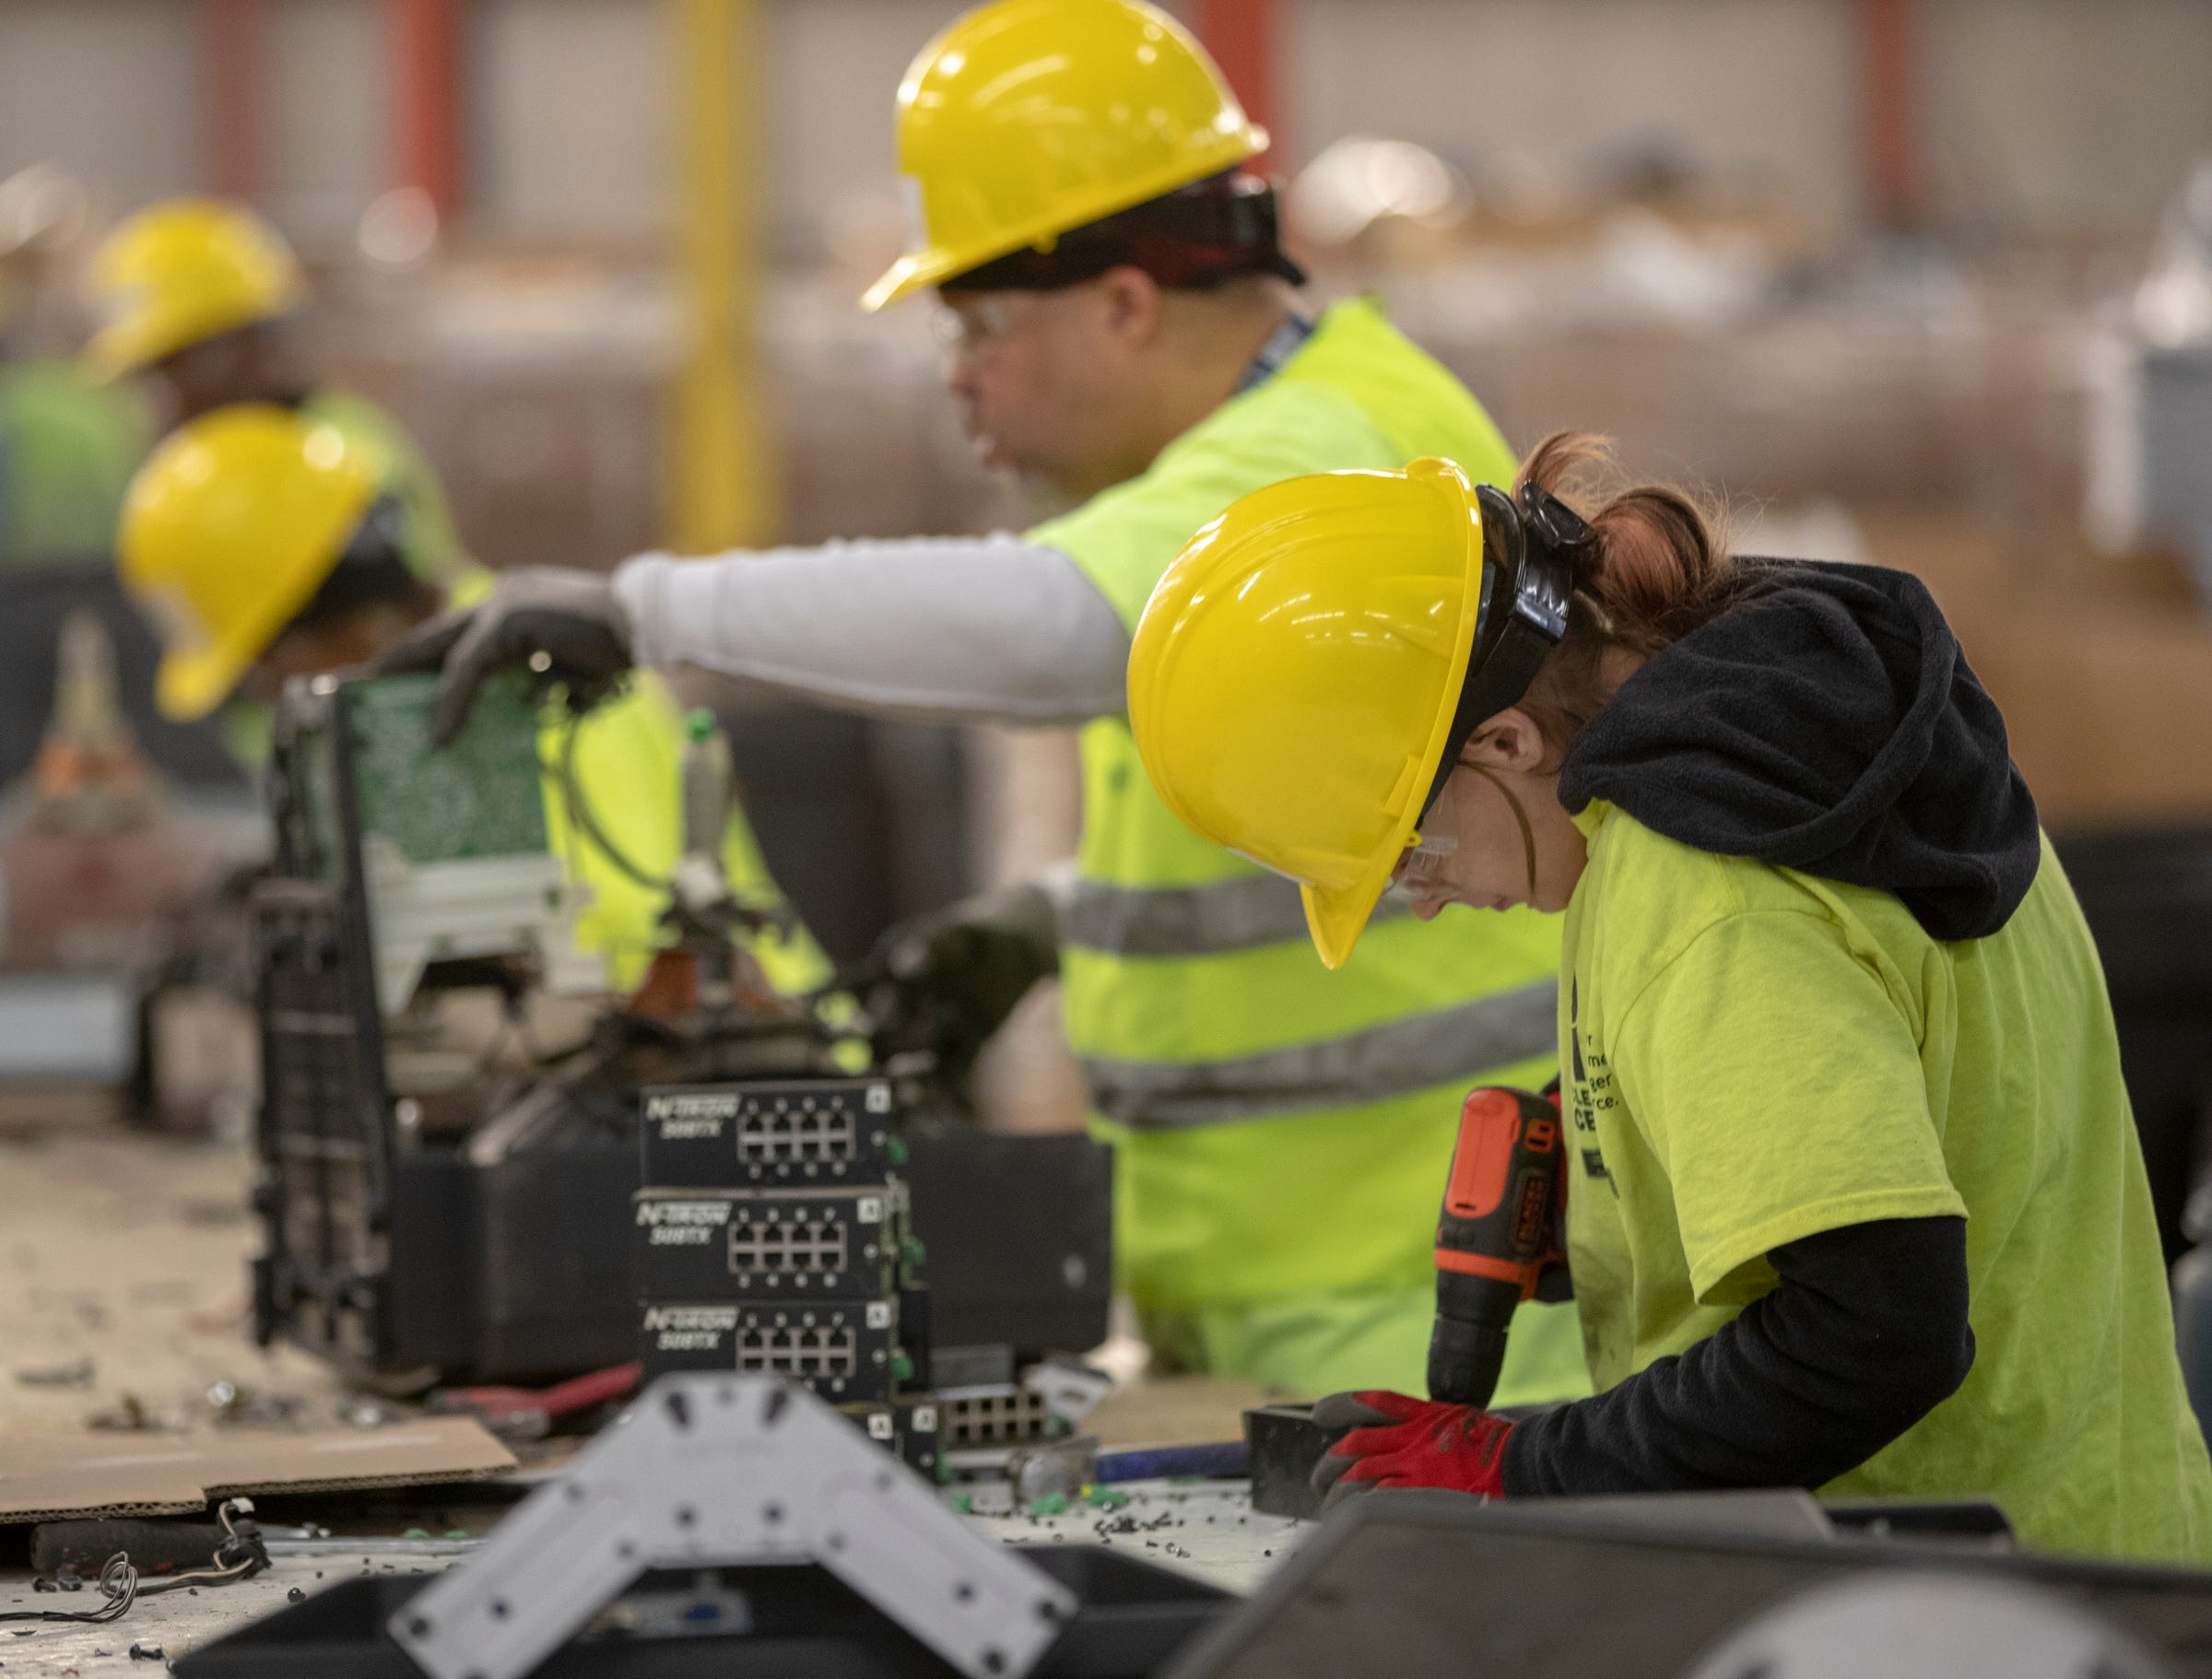 Workers use tools to separate items at Recycle Force, Wednesday, Jan. 8, 2020.